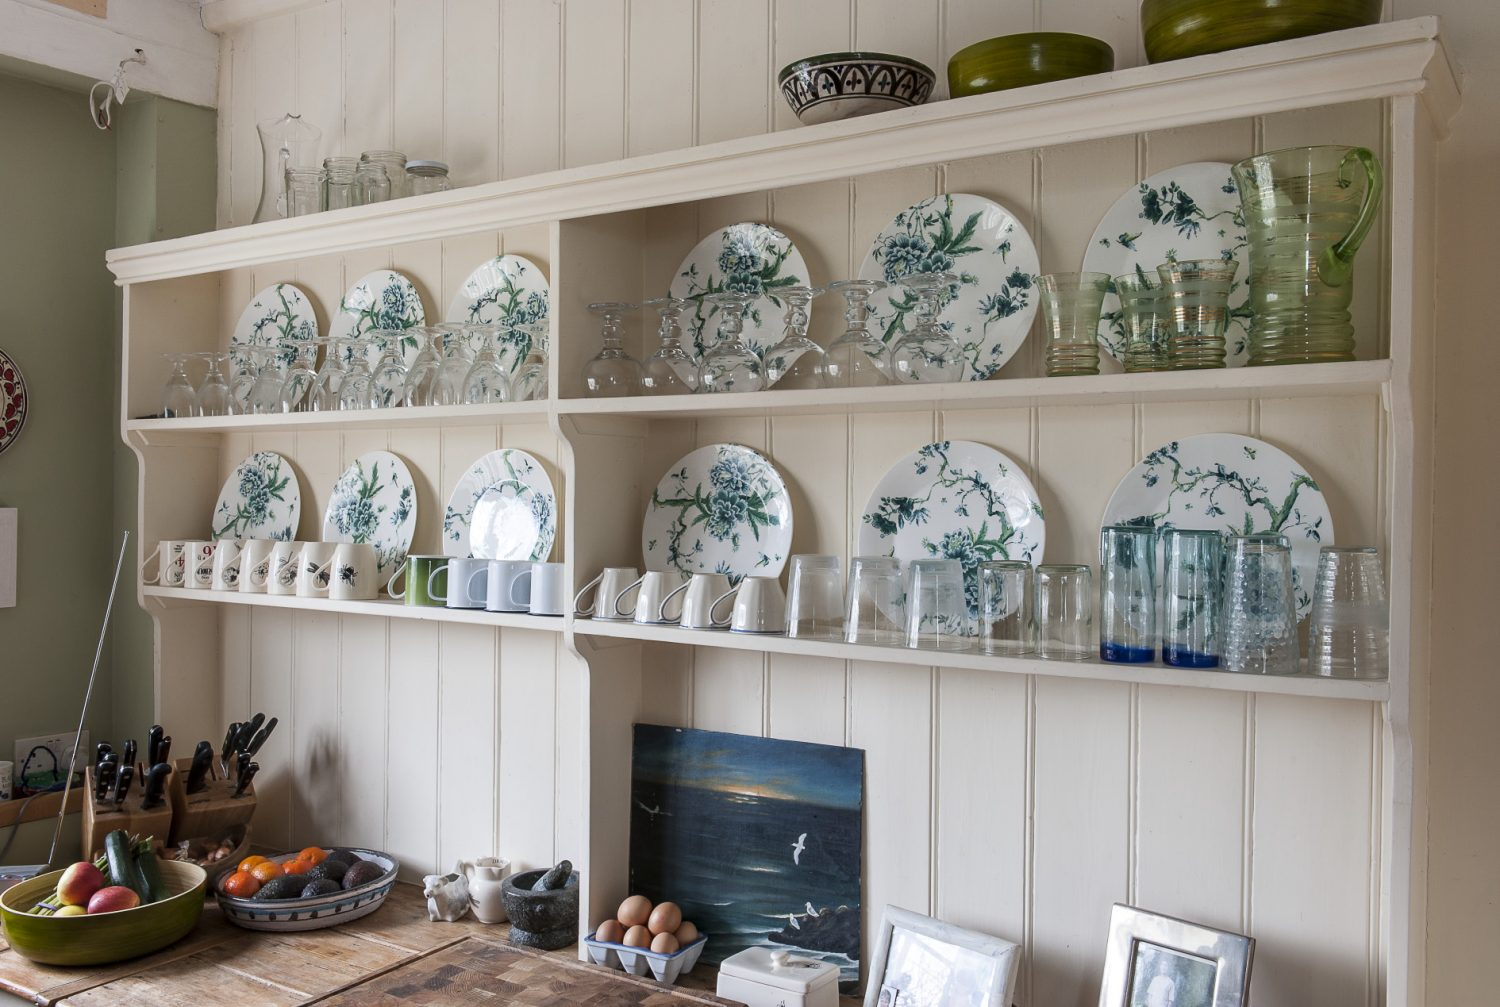 """A big, built-in dresser extends along one wall, its shelves displaying a stunning set of much-loved, green Jasper Conran Wedgwood. """"I really designed the kitchen around the Wedgwood,"""" says Francesca"""